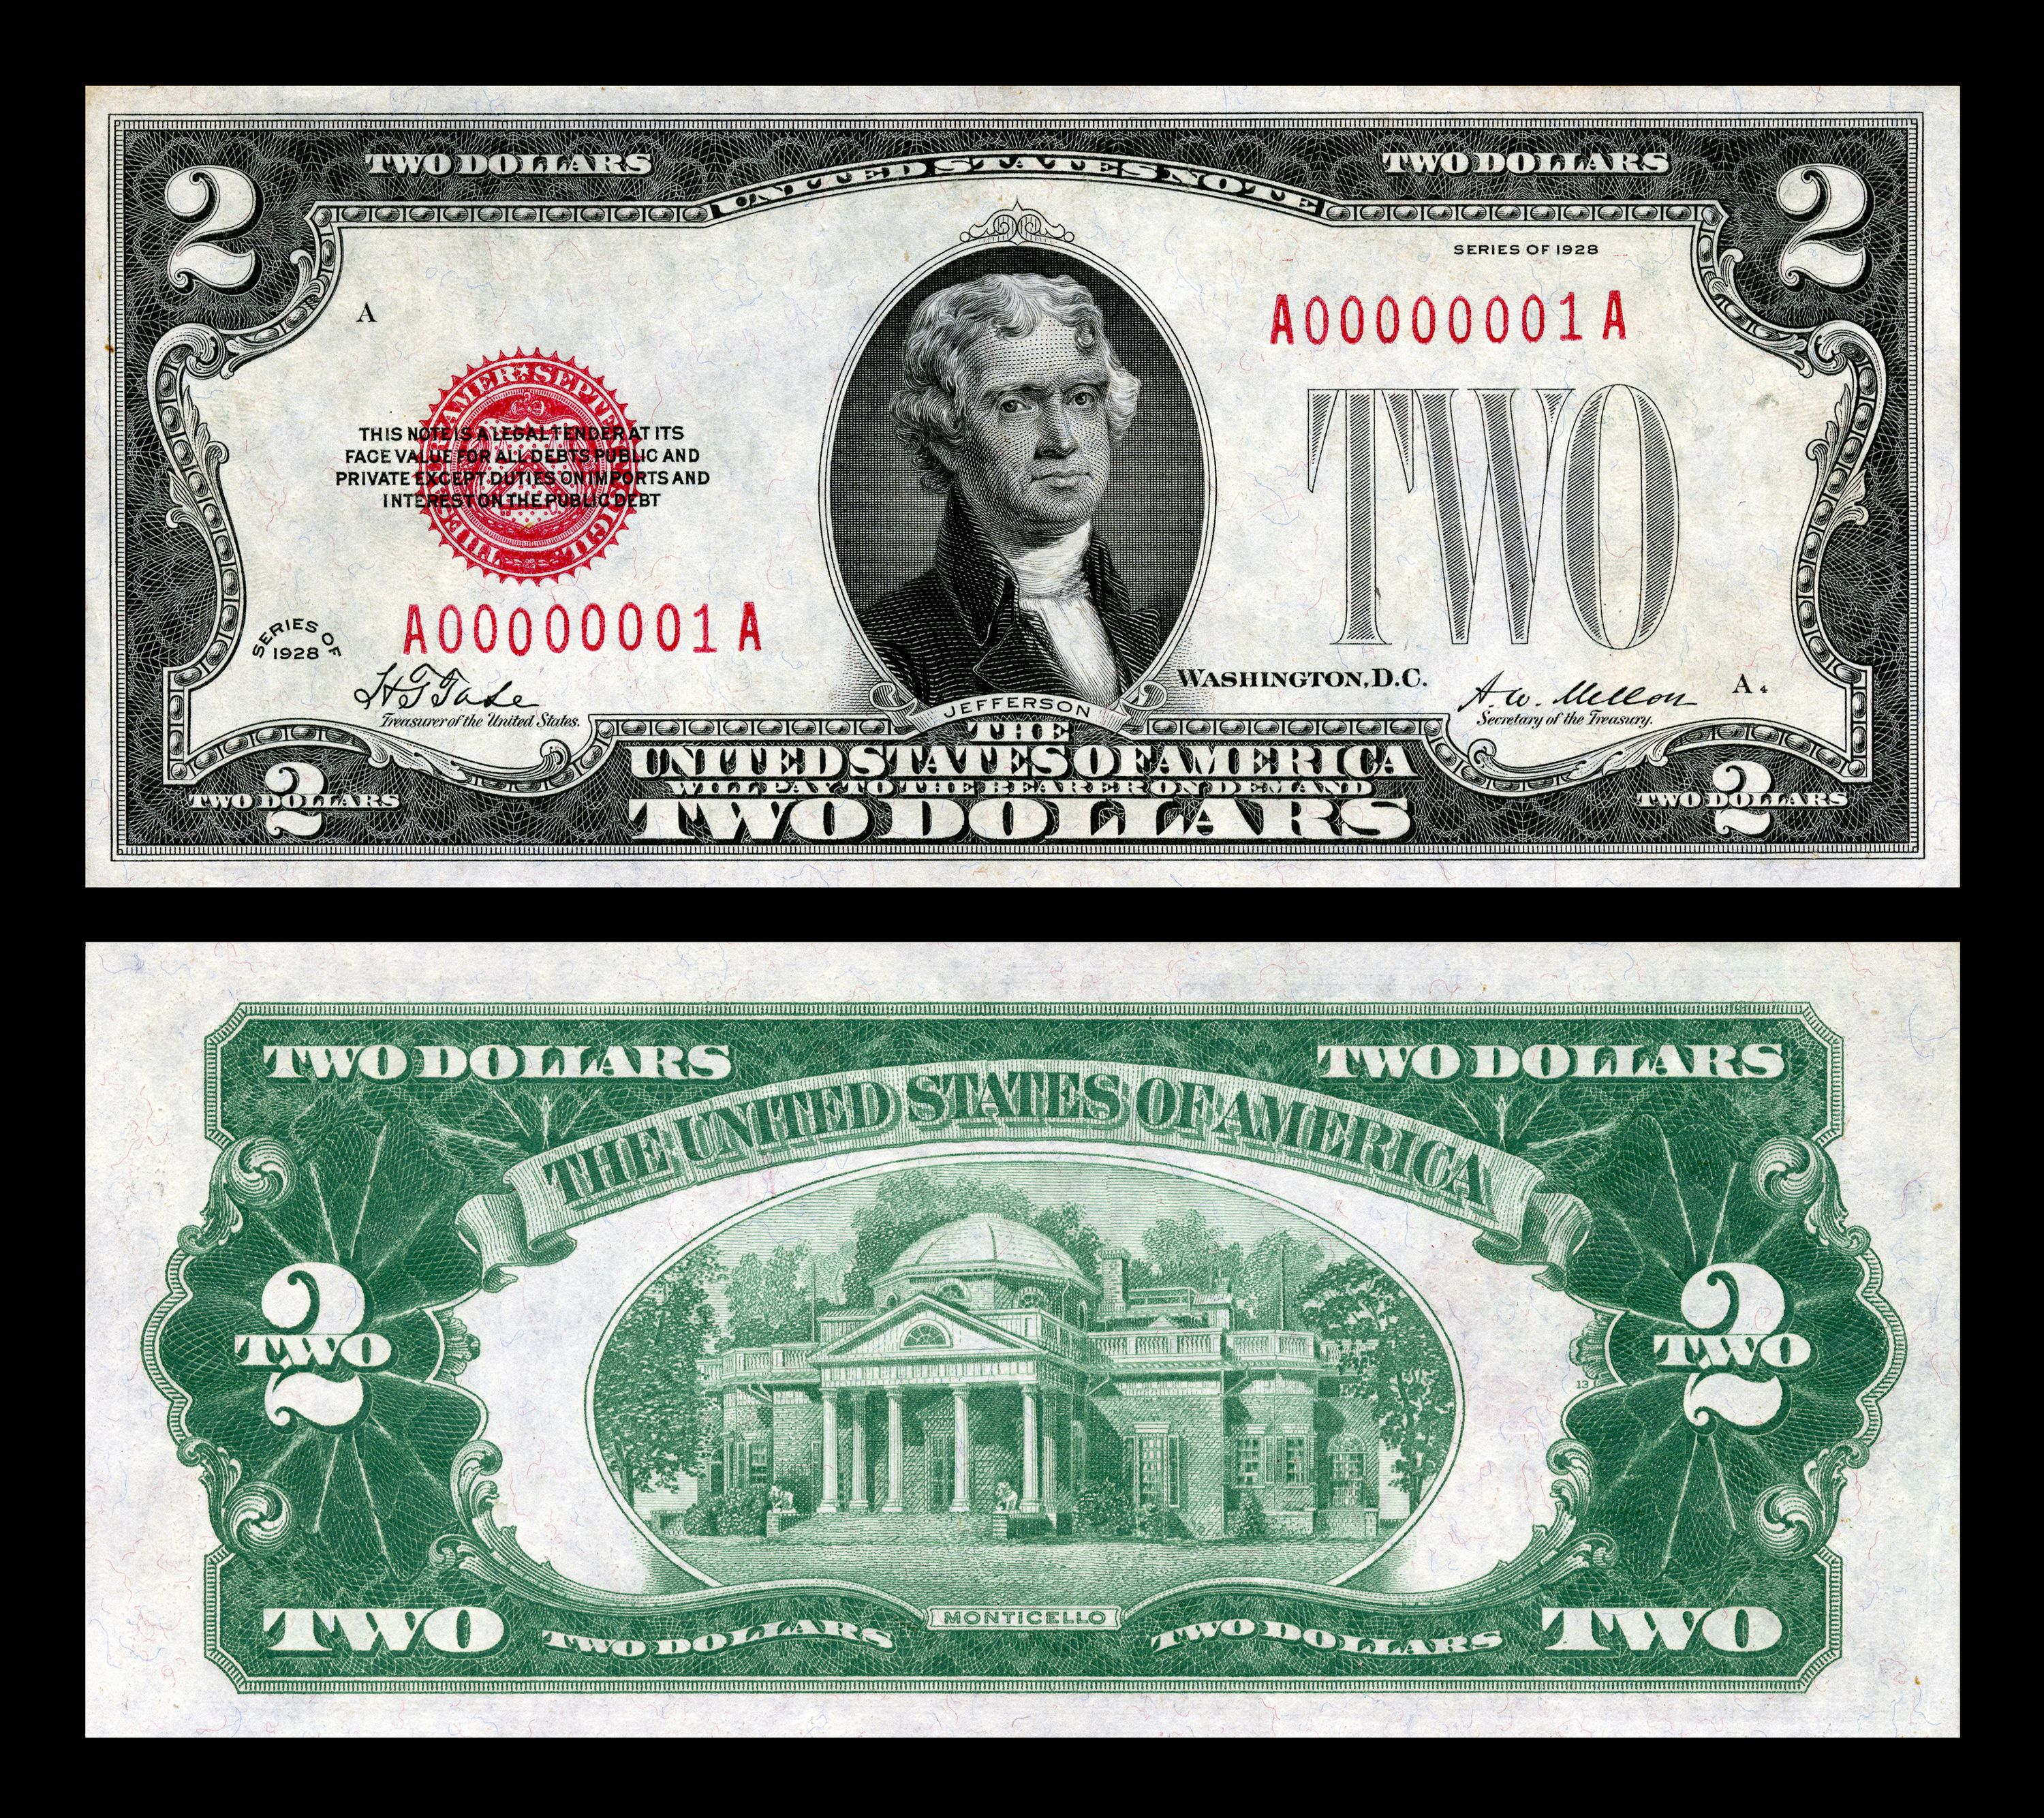 United States Note Money Postage Stamps Two Dollars 2 Dollar Bill